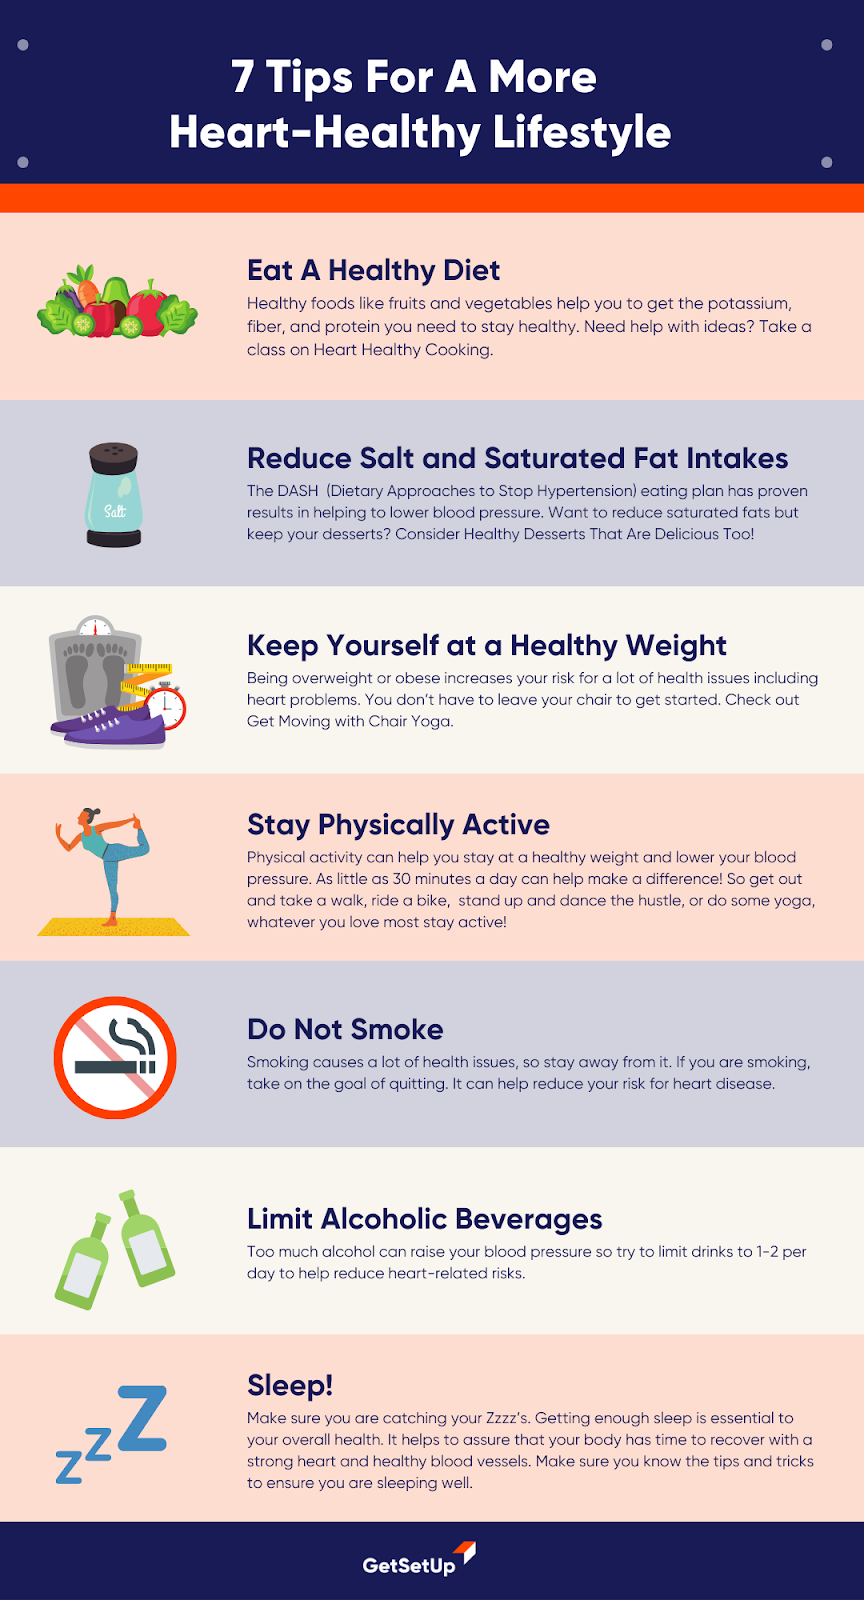 Tips for Healthy Heart Lifestyle Changes To Reduce Blood Pressure